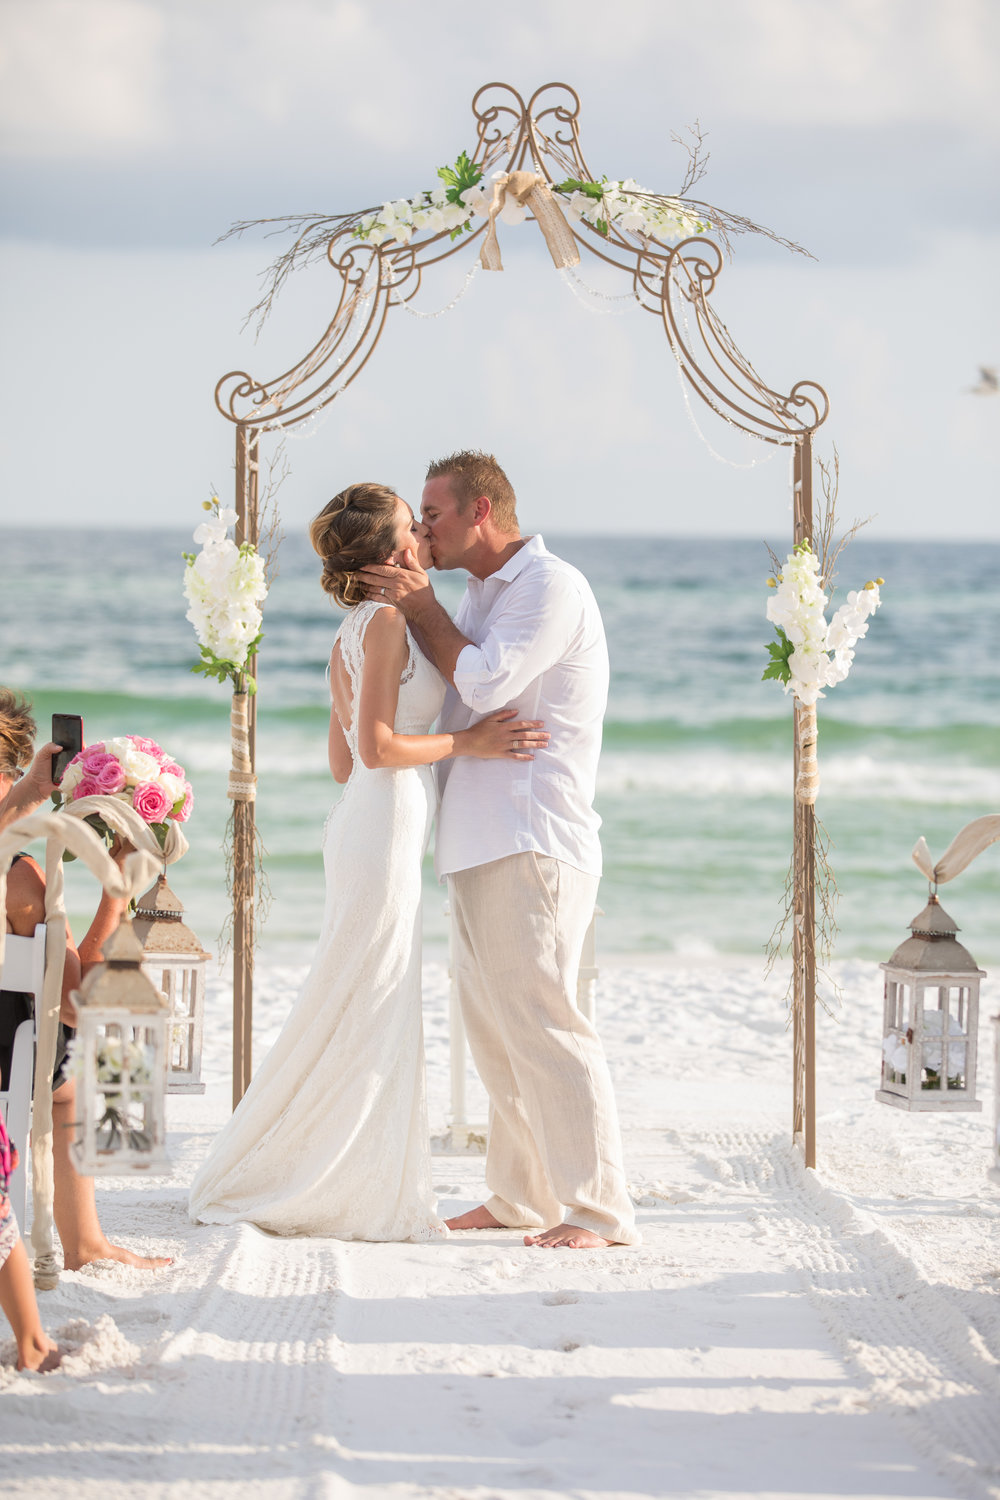 destin beach wedding package picture77_ (1).jpg